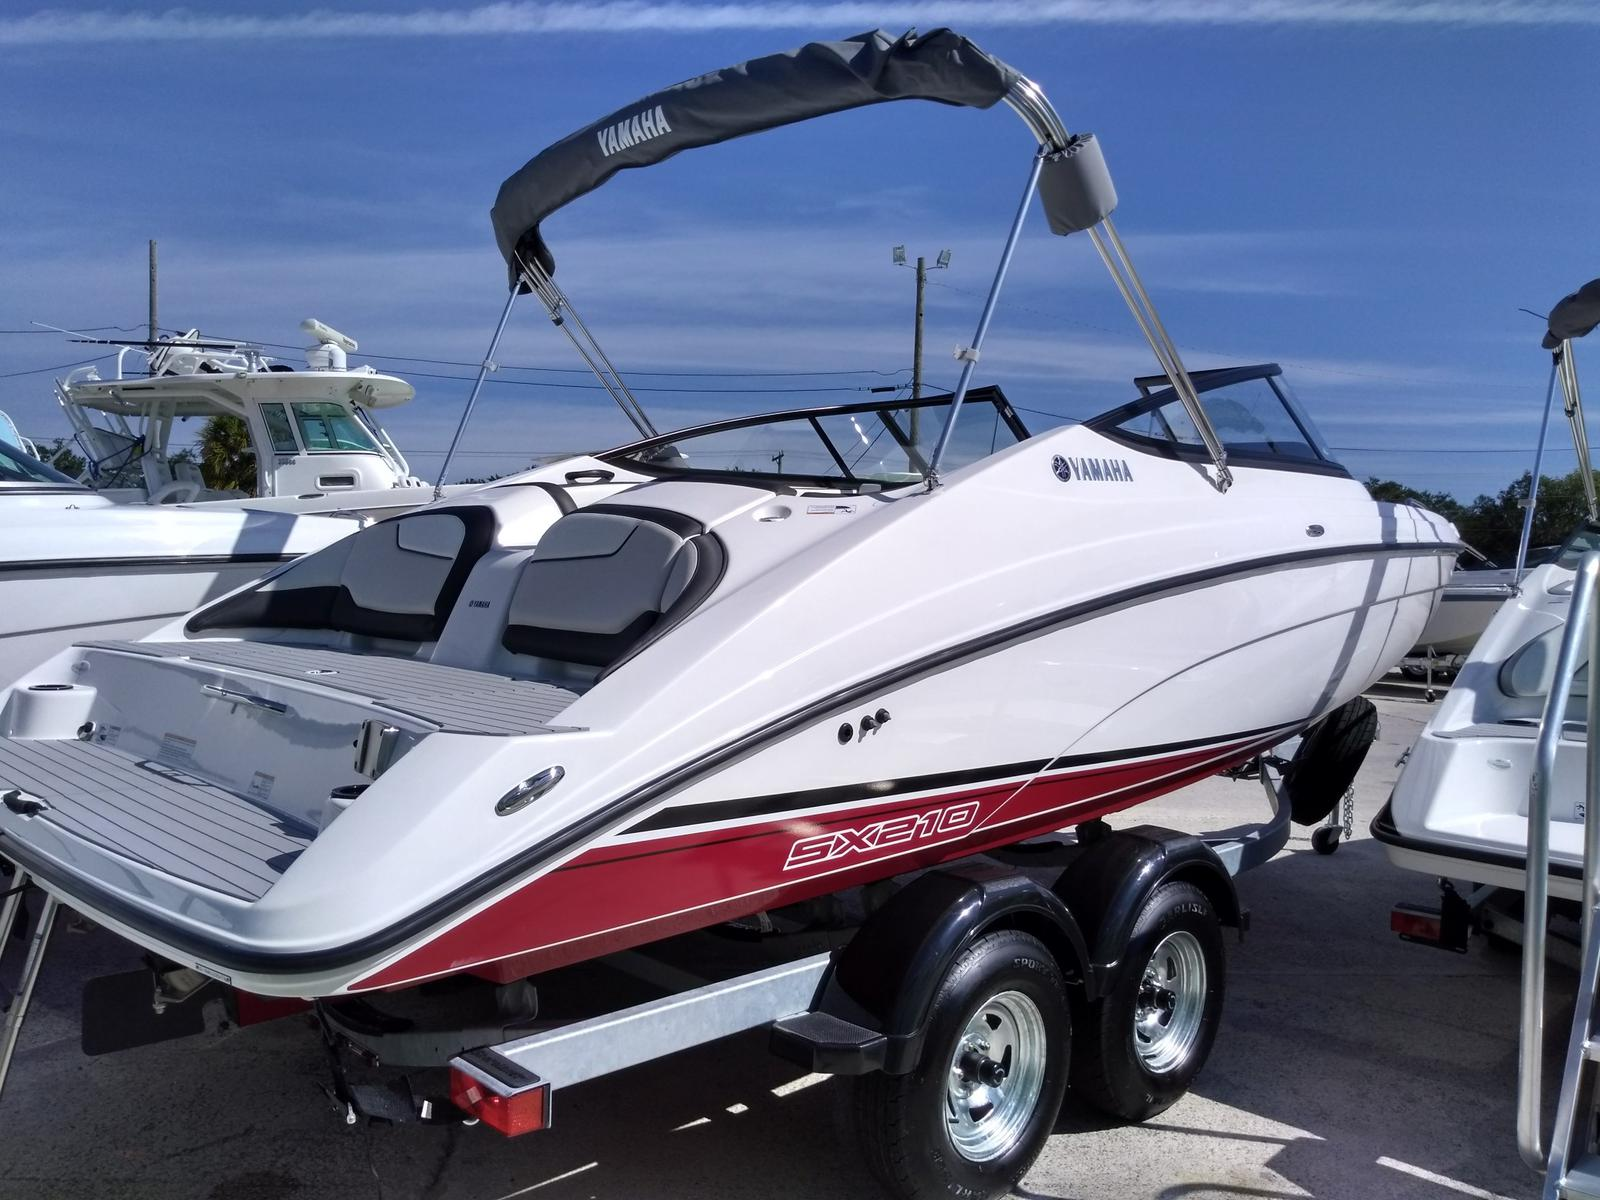 2018 Yamaha SX210 for sale in Rockledge, FL. Boaters Exchange